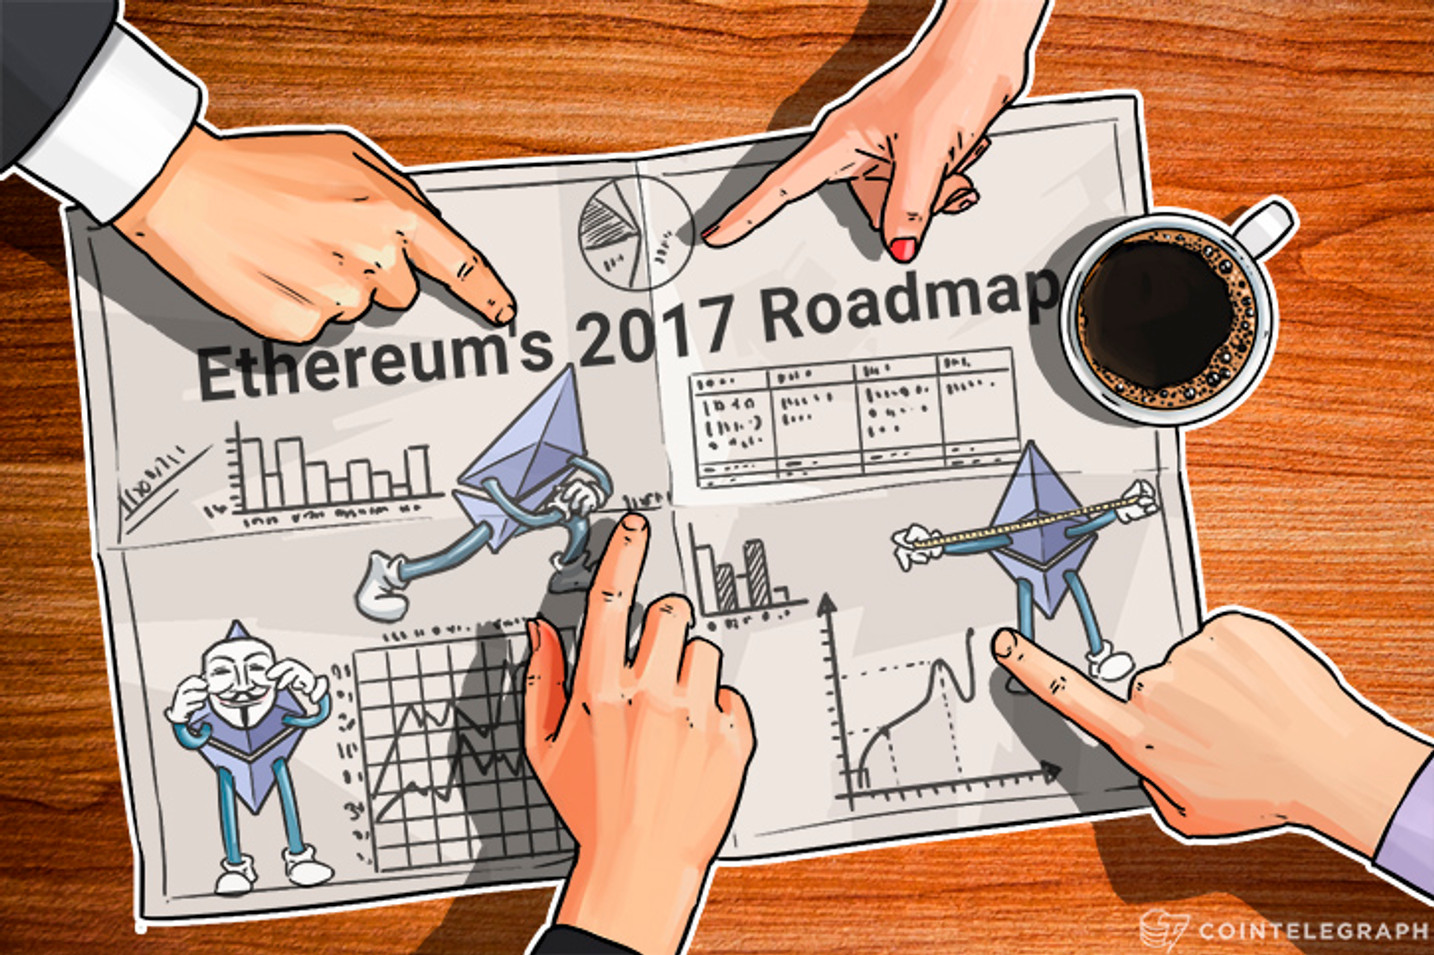 Ethereum's 2017 Roadmap: Flexibility, PoW to PoS, Improving Ecosystem